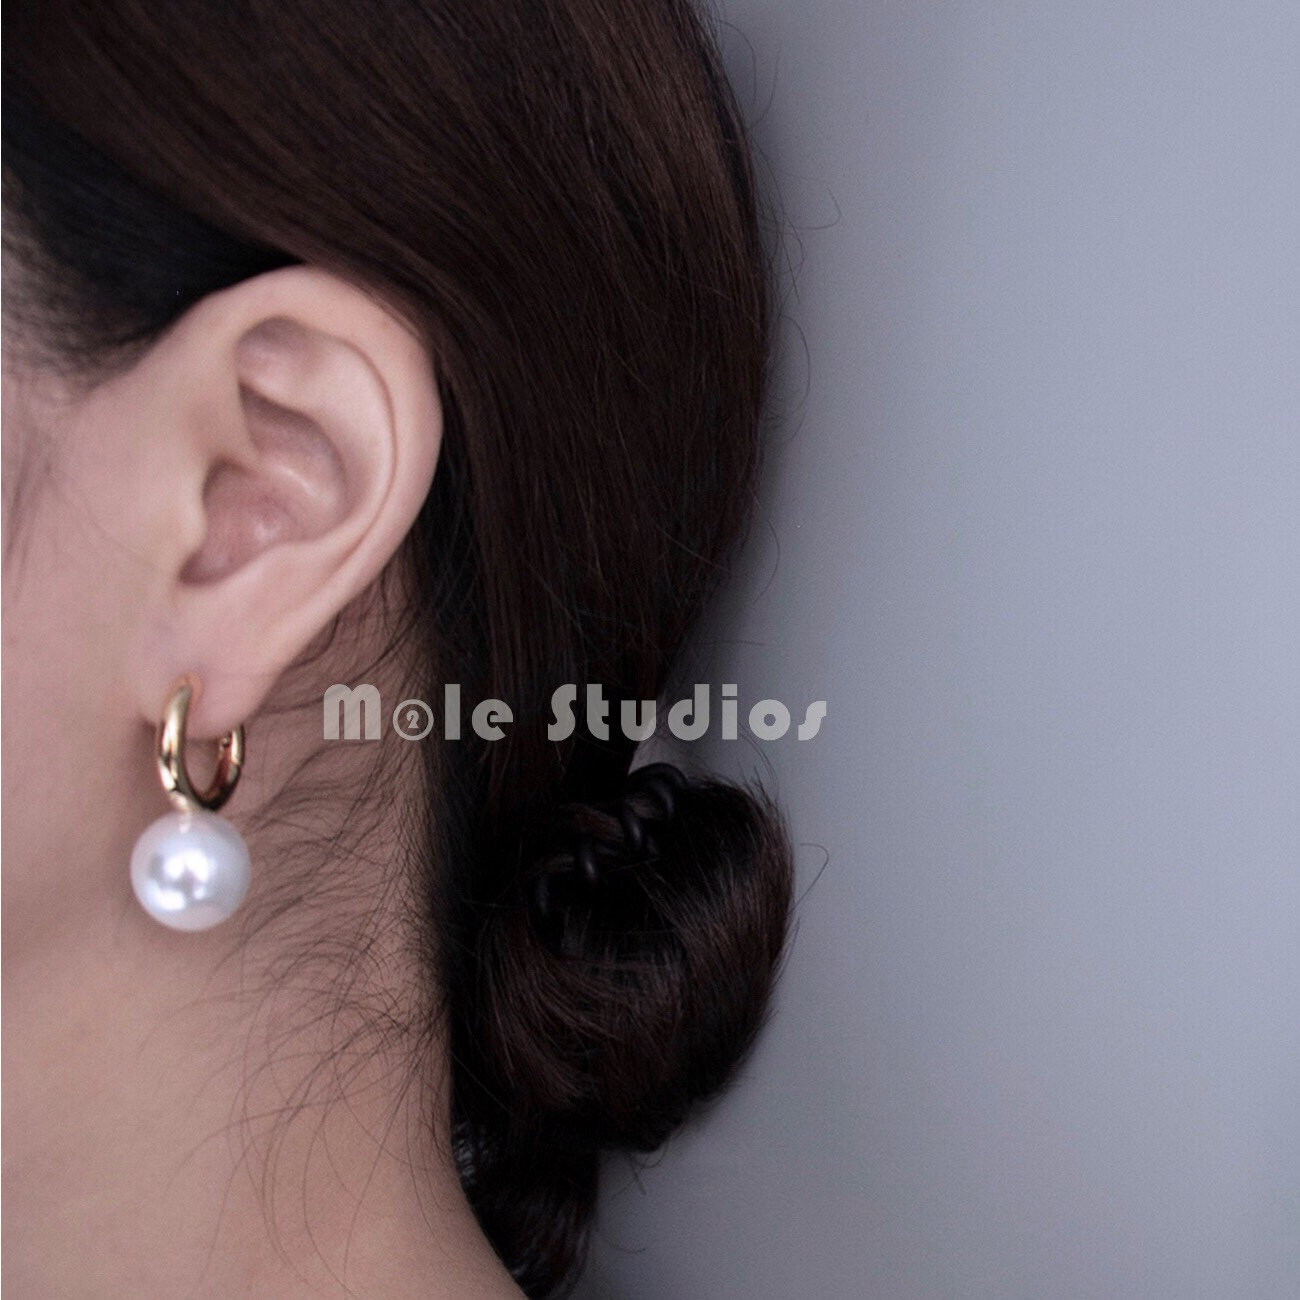 Mole studios / French ins same chic ring imitation pearl earrings copper plated gold earrings